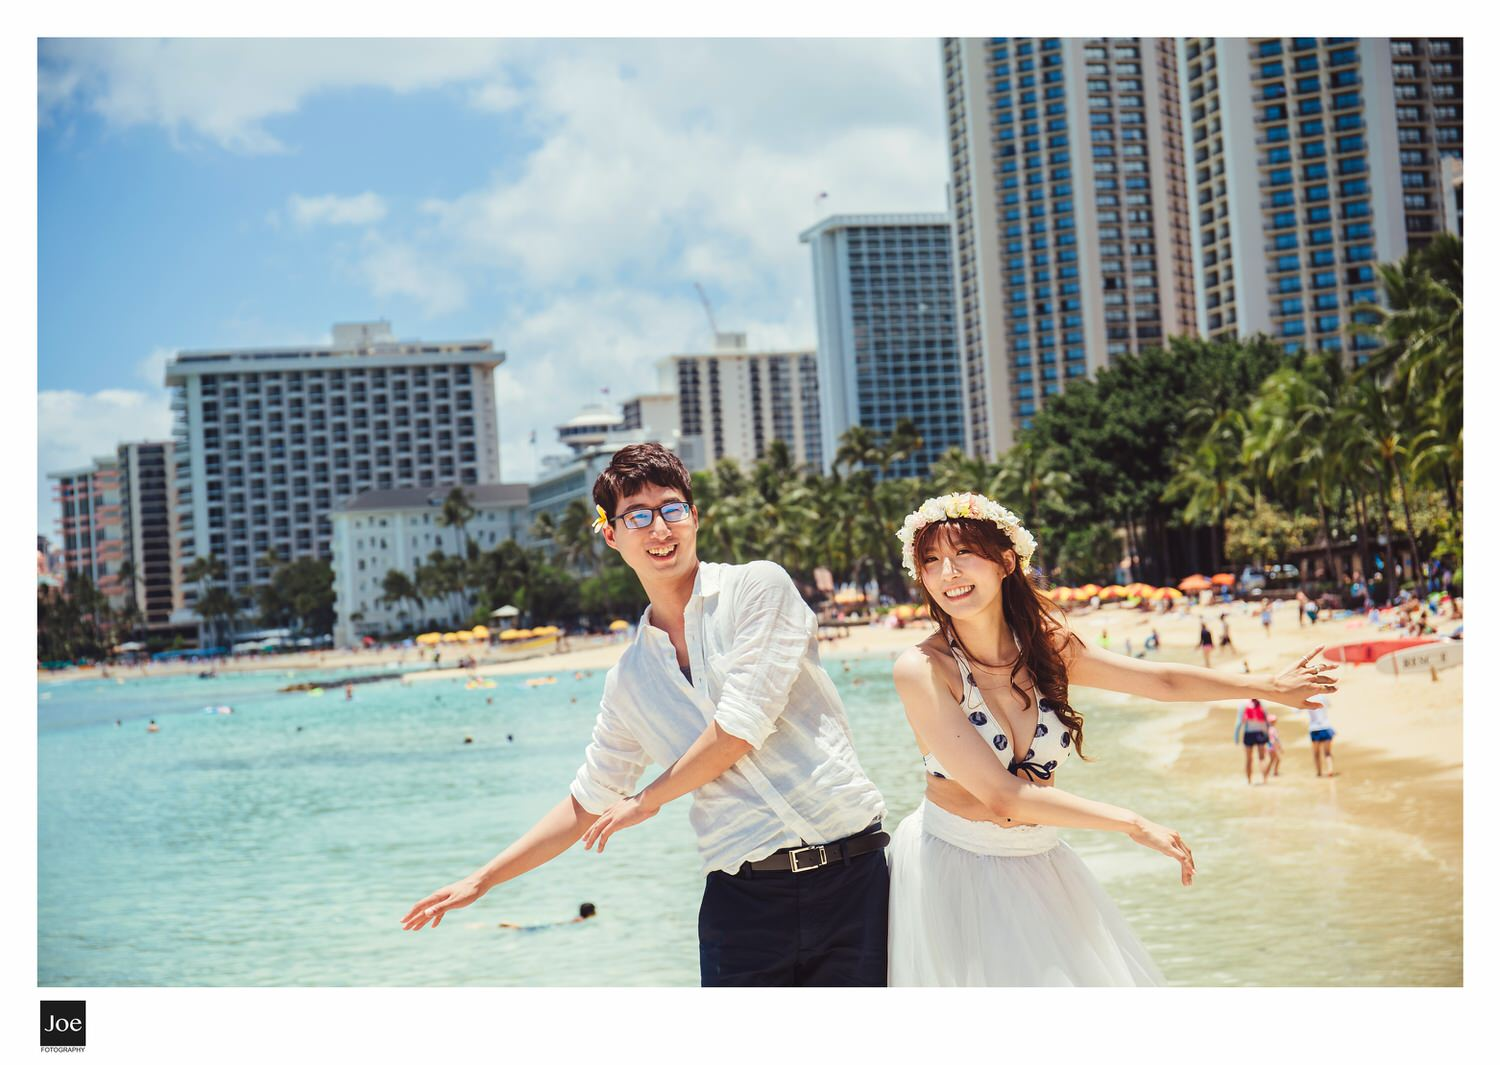 070-waikiki-beach-hawaii-pre-wedding-tiffany-tony-joe-fotography.jpg